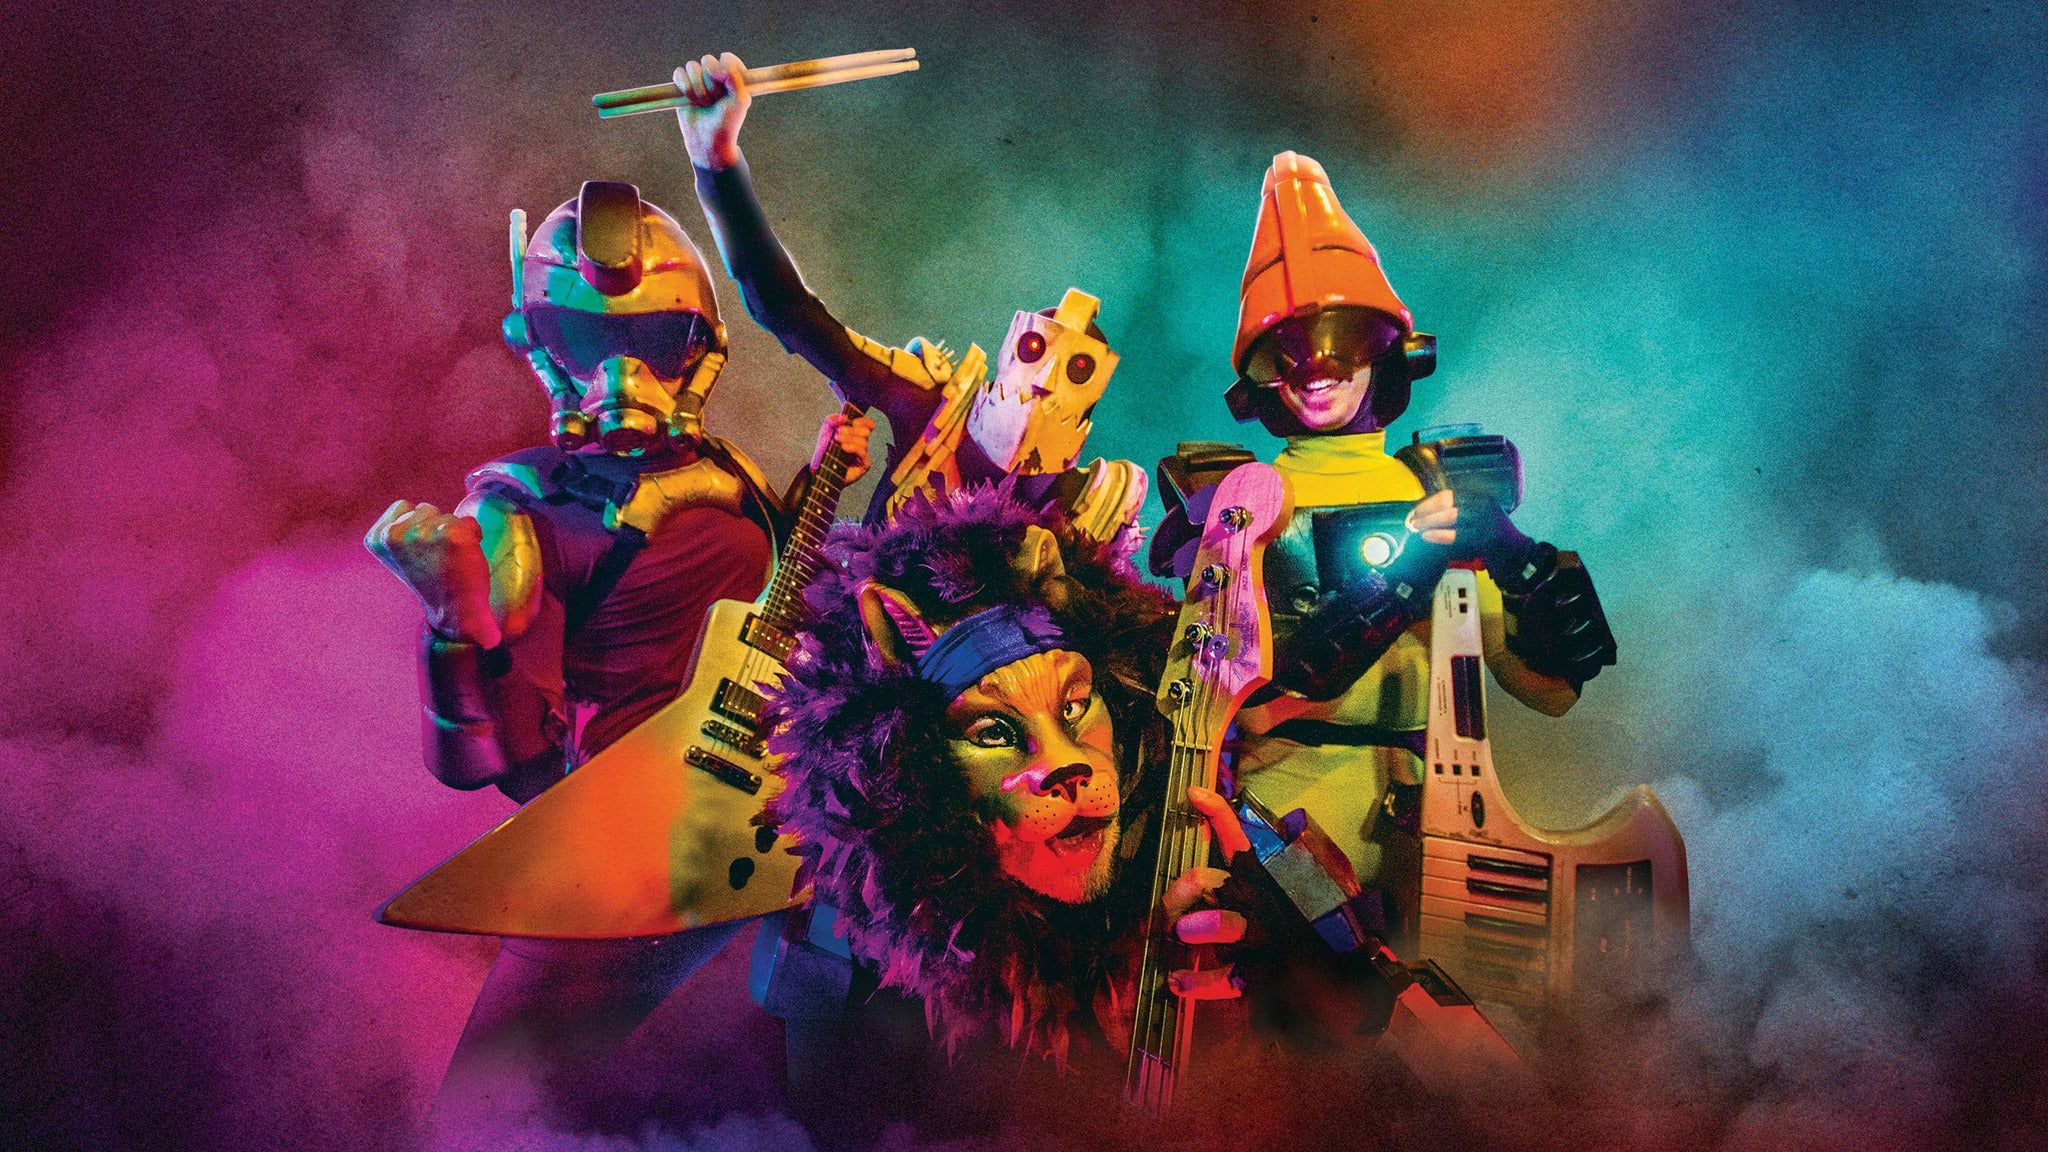 TWRP, the Protomen